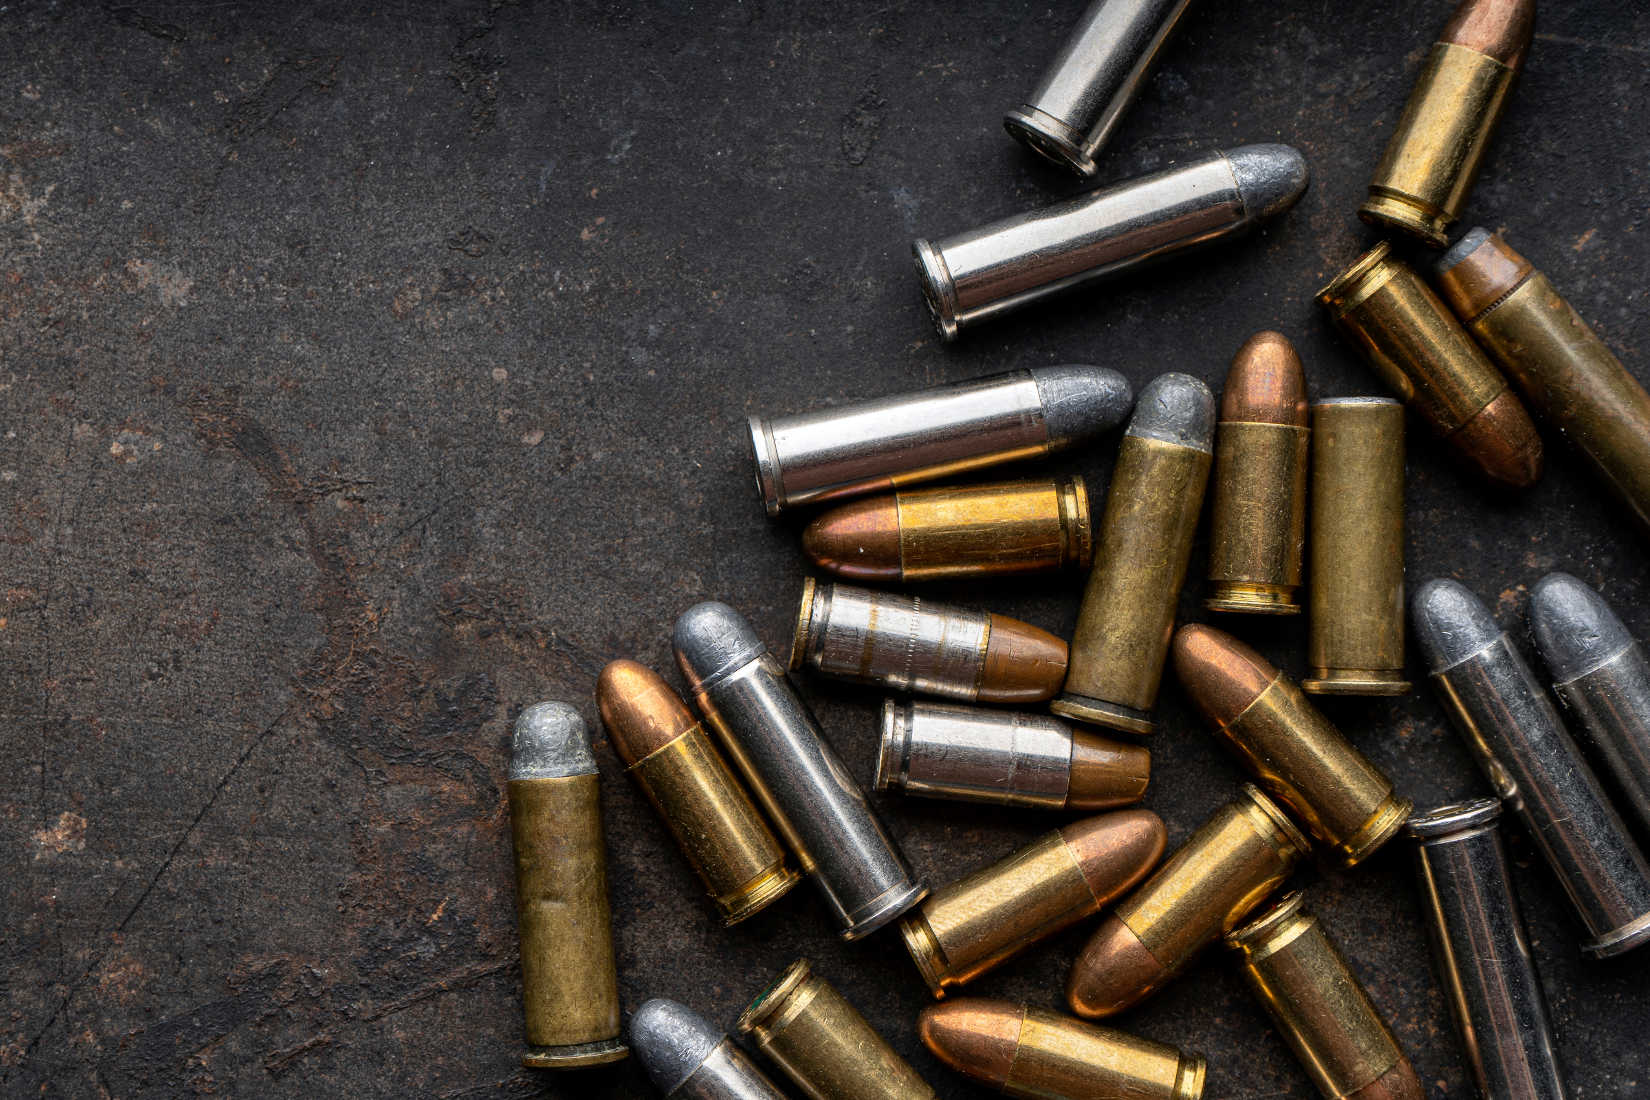 PA Republican Puts Forward Permit Mandate for Ammo Purchases